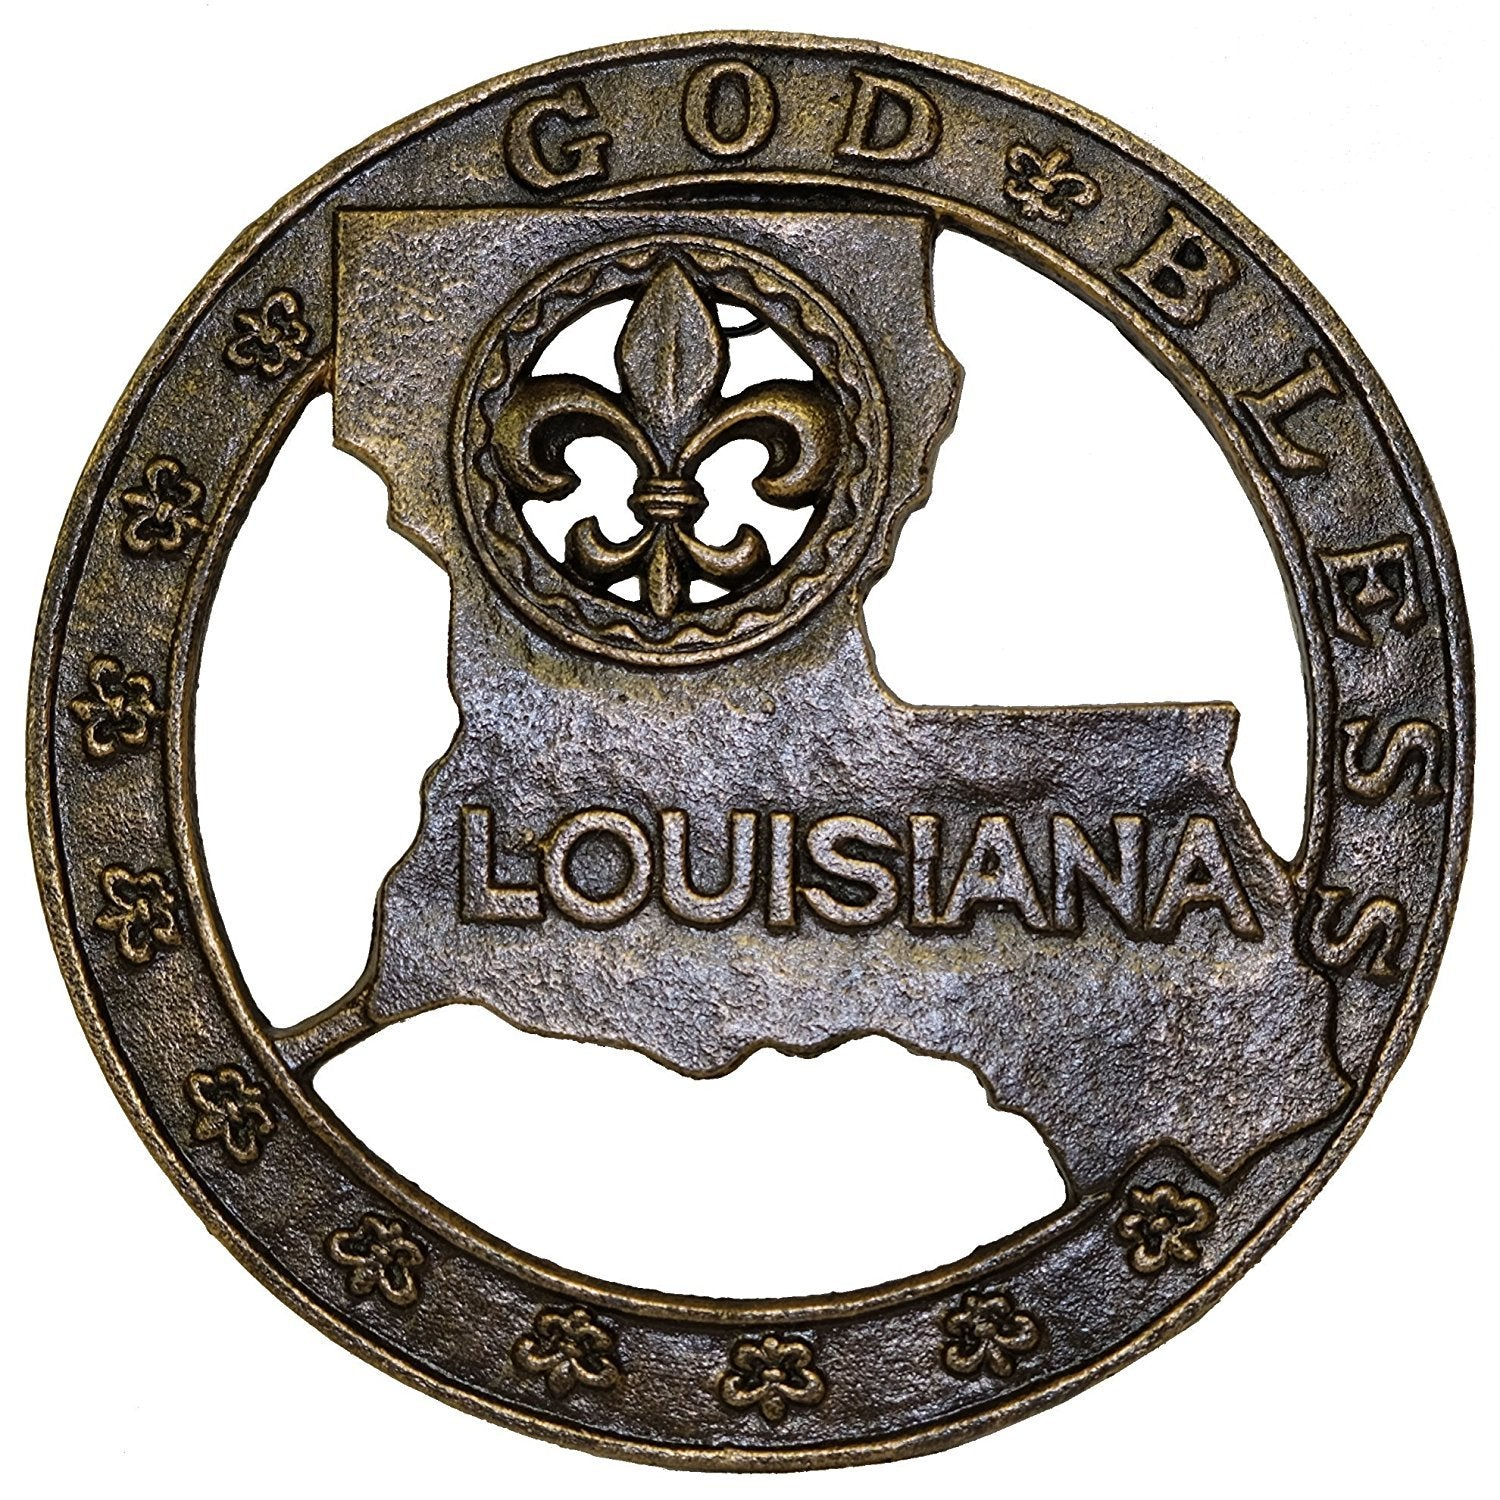 God Bless Louisiana Map Cast Iron Trivet - Counter Top or Wall Art